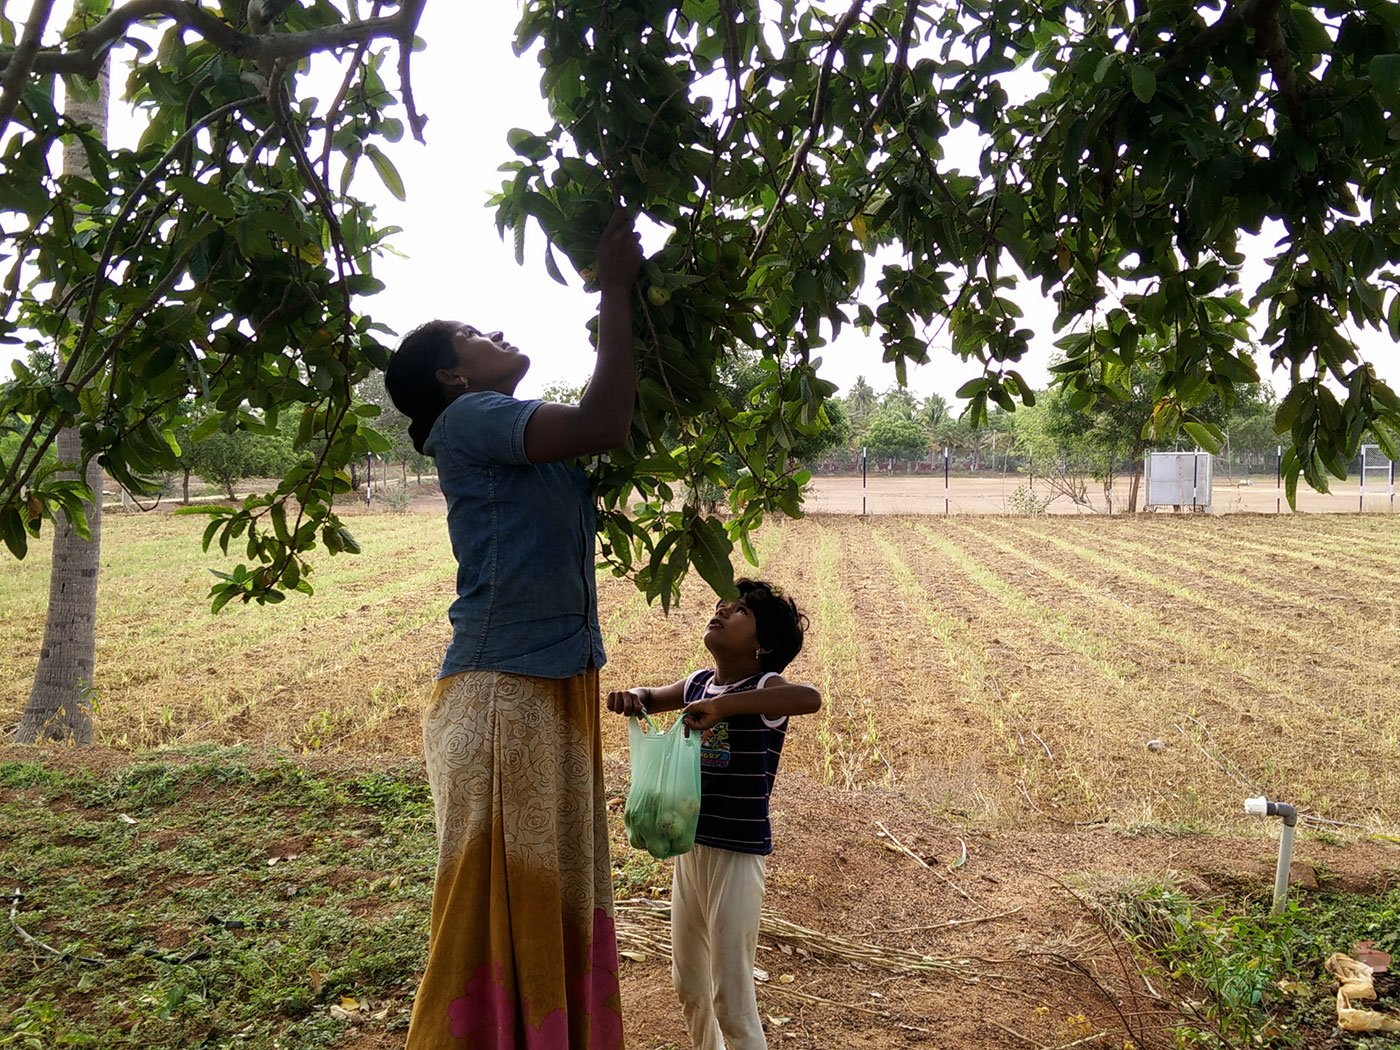 Chandra plucking guavas with Iniya